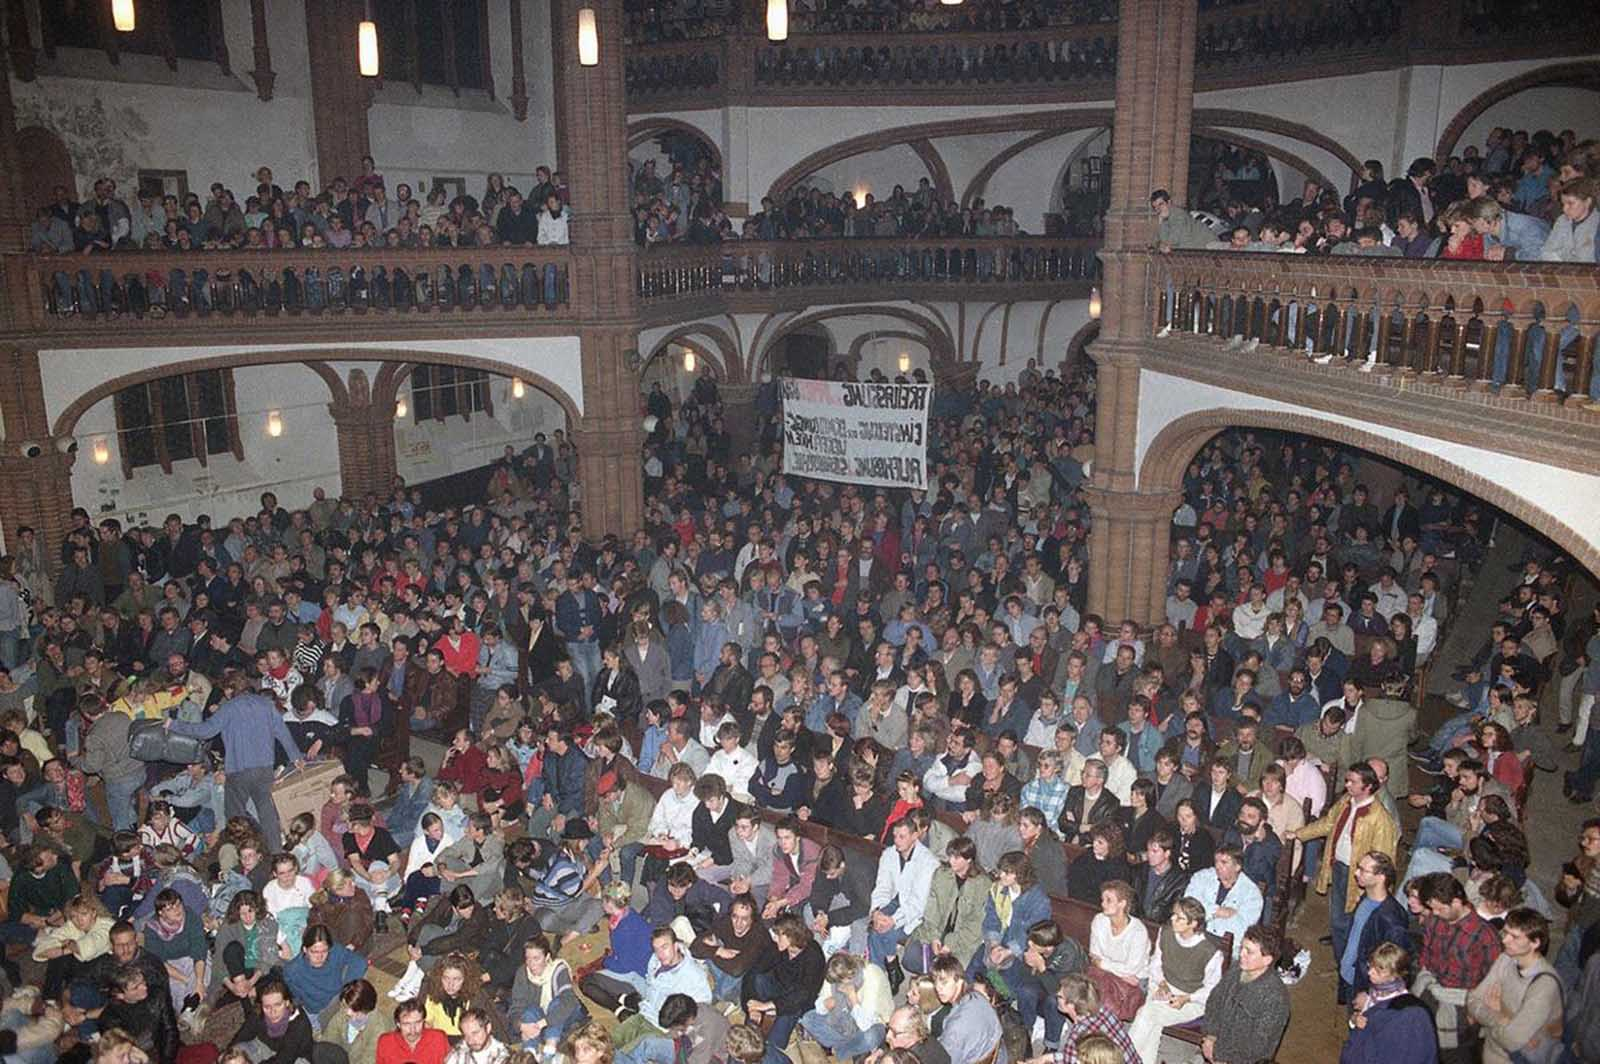 A general view of the overcrowded East Berlin Gethsemane Church on October 12, 1989. About 1,000 East Germans took part in a prayer service here for imprisoned pro-democracy protesters. The church was the focus of protests in the final days of the wall.